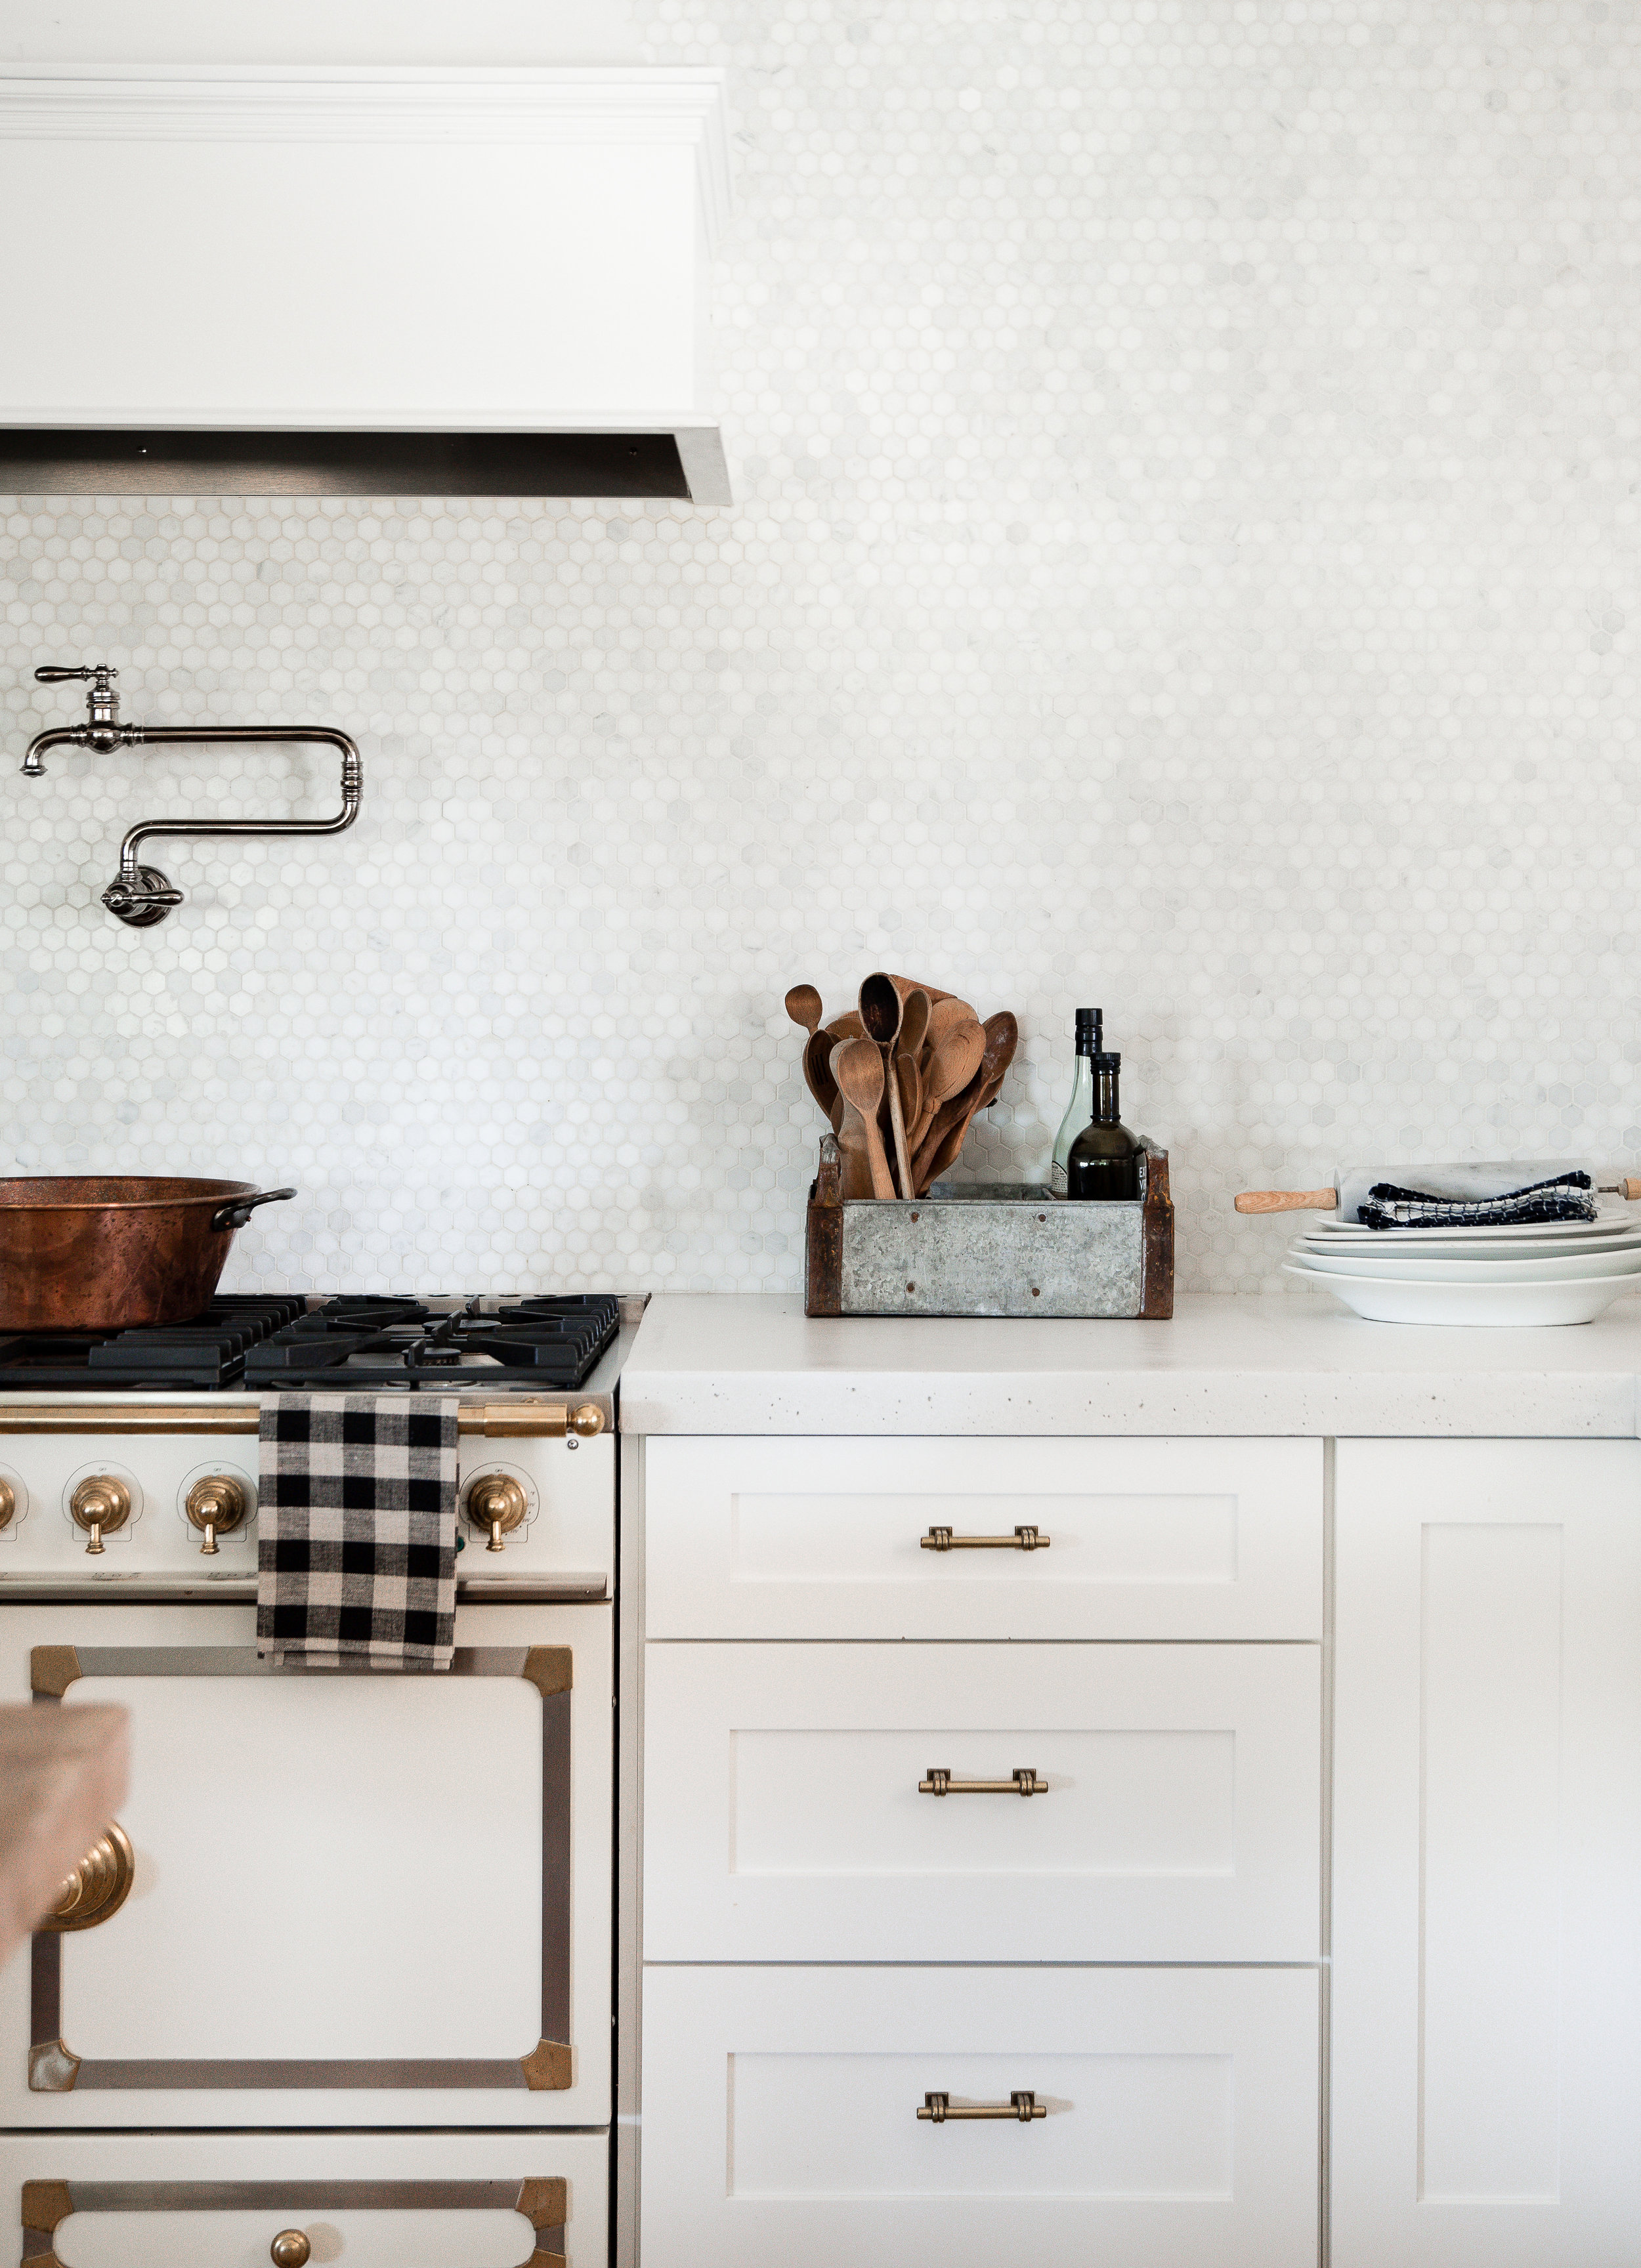 White shaker cabinets in farmhouse kitchen with marble back splash and LaCornue stove #whitekitchen #modernfarmhousekitchen #farmhousekitchen